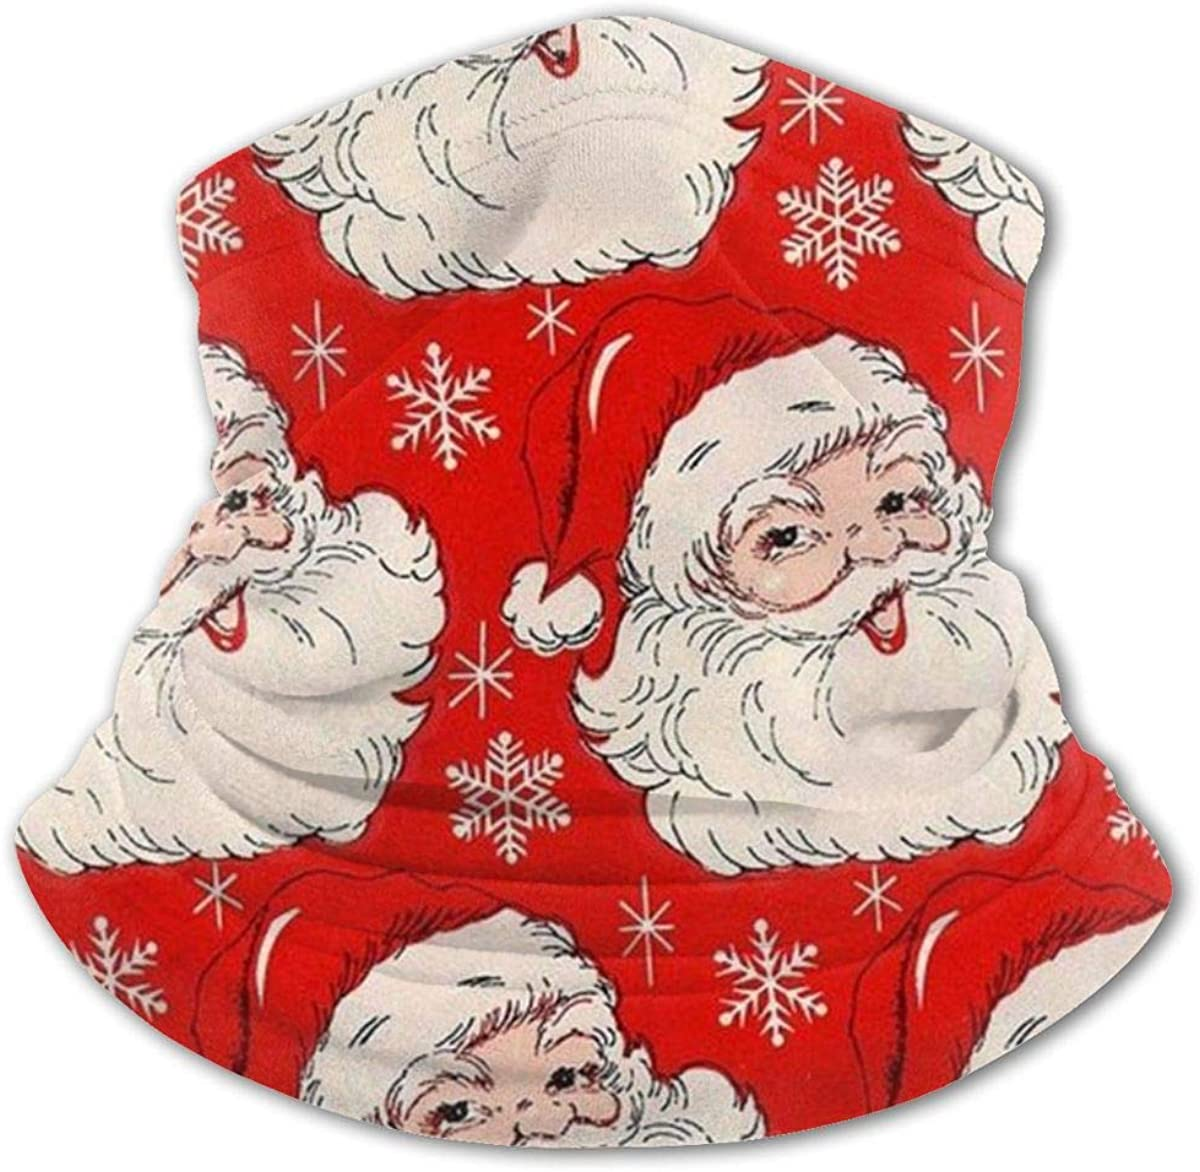 Merry Christmas Headwear For Girls And Boys, Head Wrap, Neck Gaiter, Headband, Tenn Fishing Mask, Magic Scarf, Tube Mask, Face Bandana Mask For Camping Running Cycling